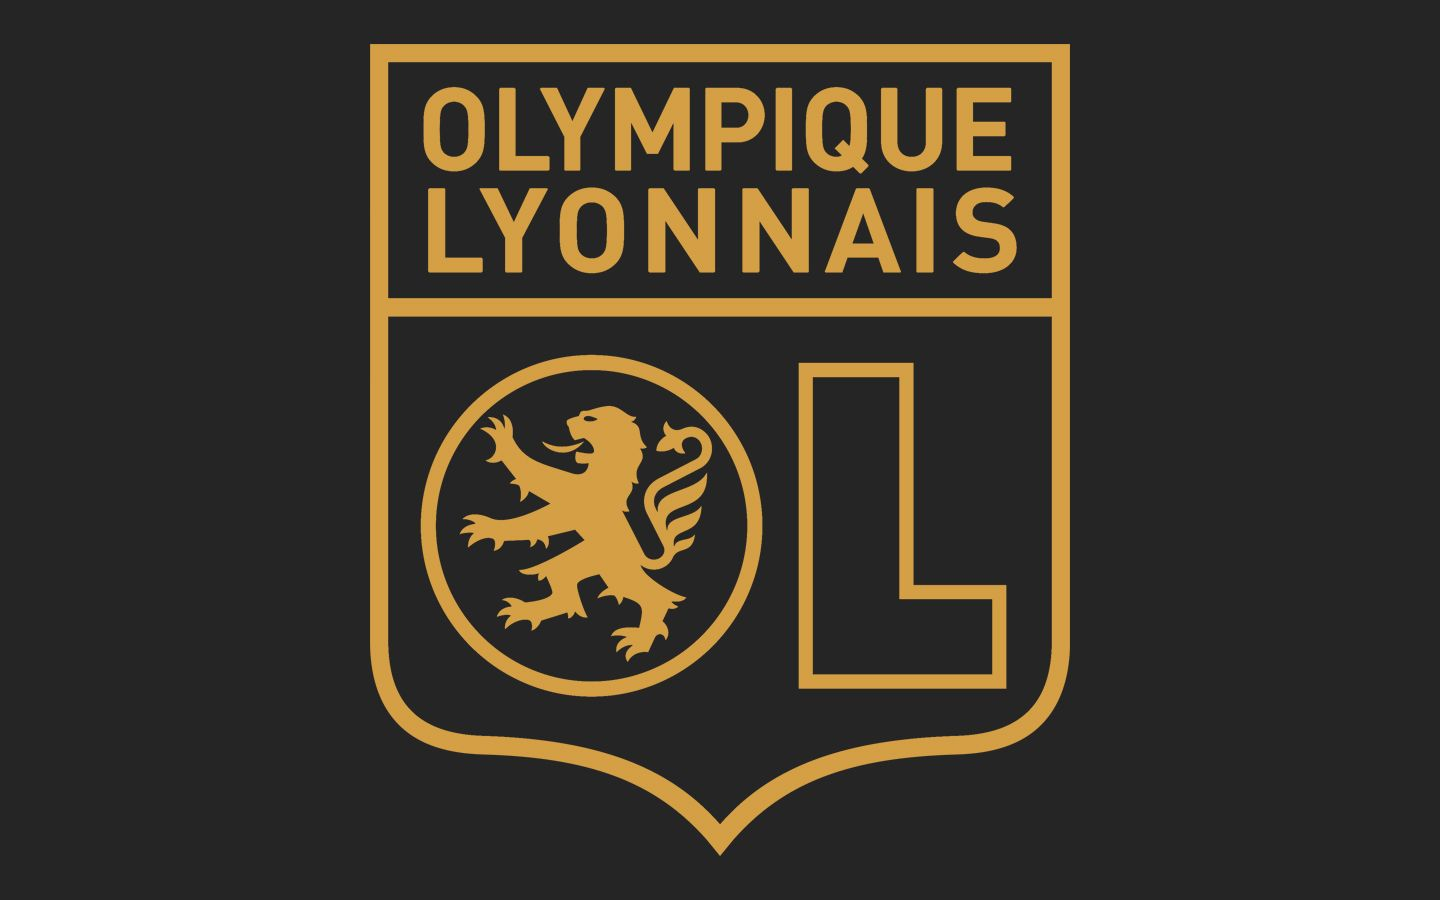 Download Wallpapers Olympique Lyon Football Club Emblem France France Ligue 1 Lyon Avec Images Olympique Lyonnais Olympique Lyon Football